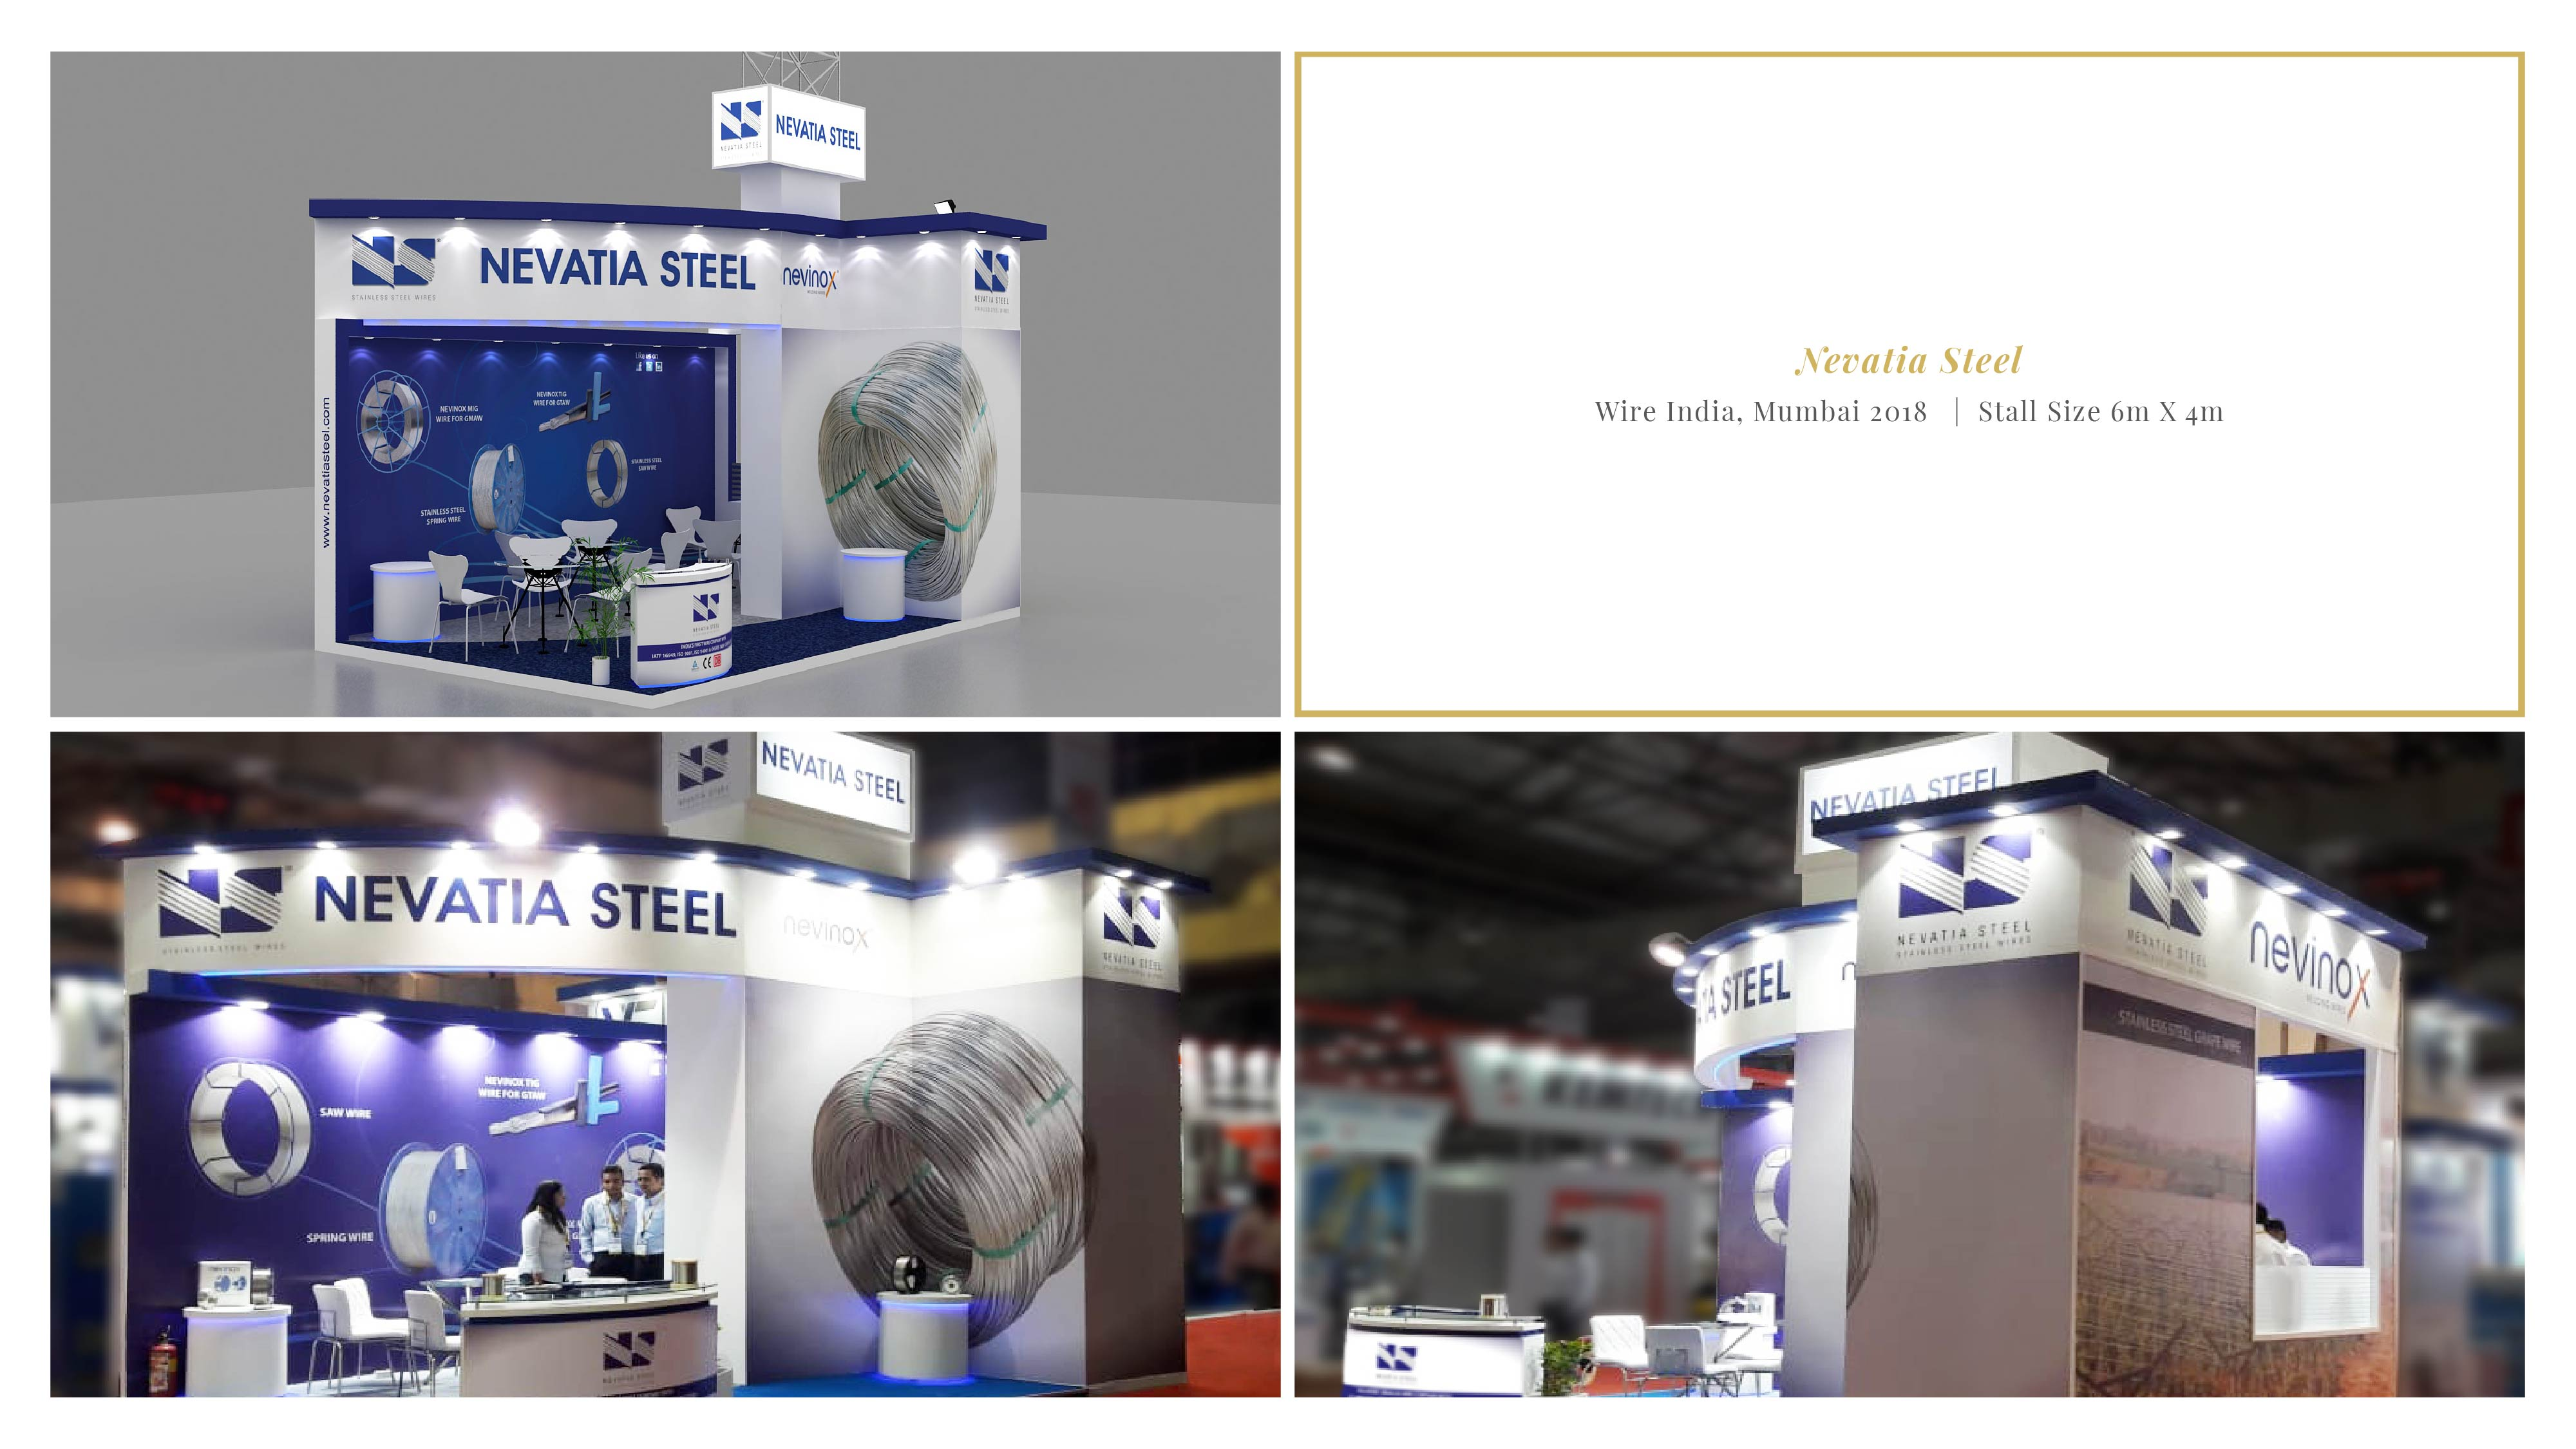 Nevatia Steel - Wire India 2018, Mumbai